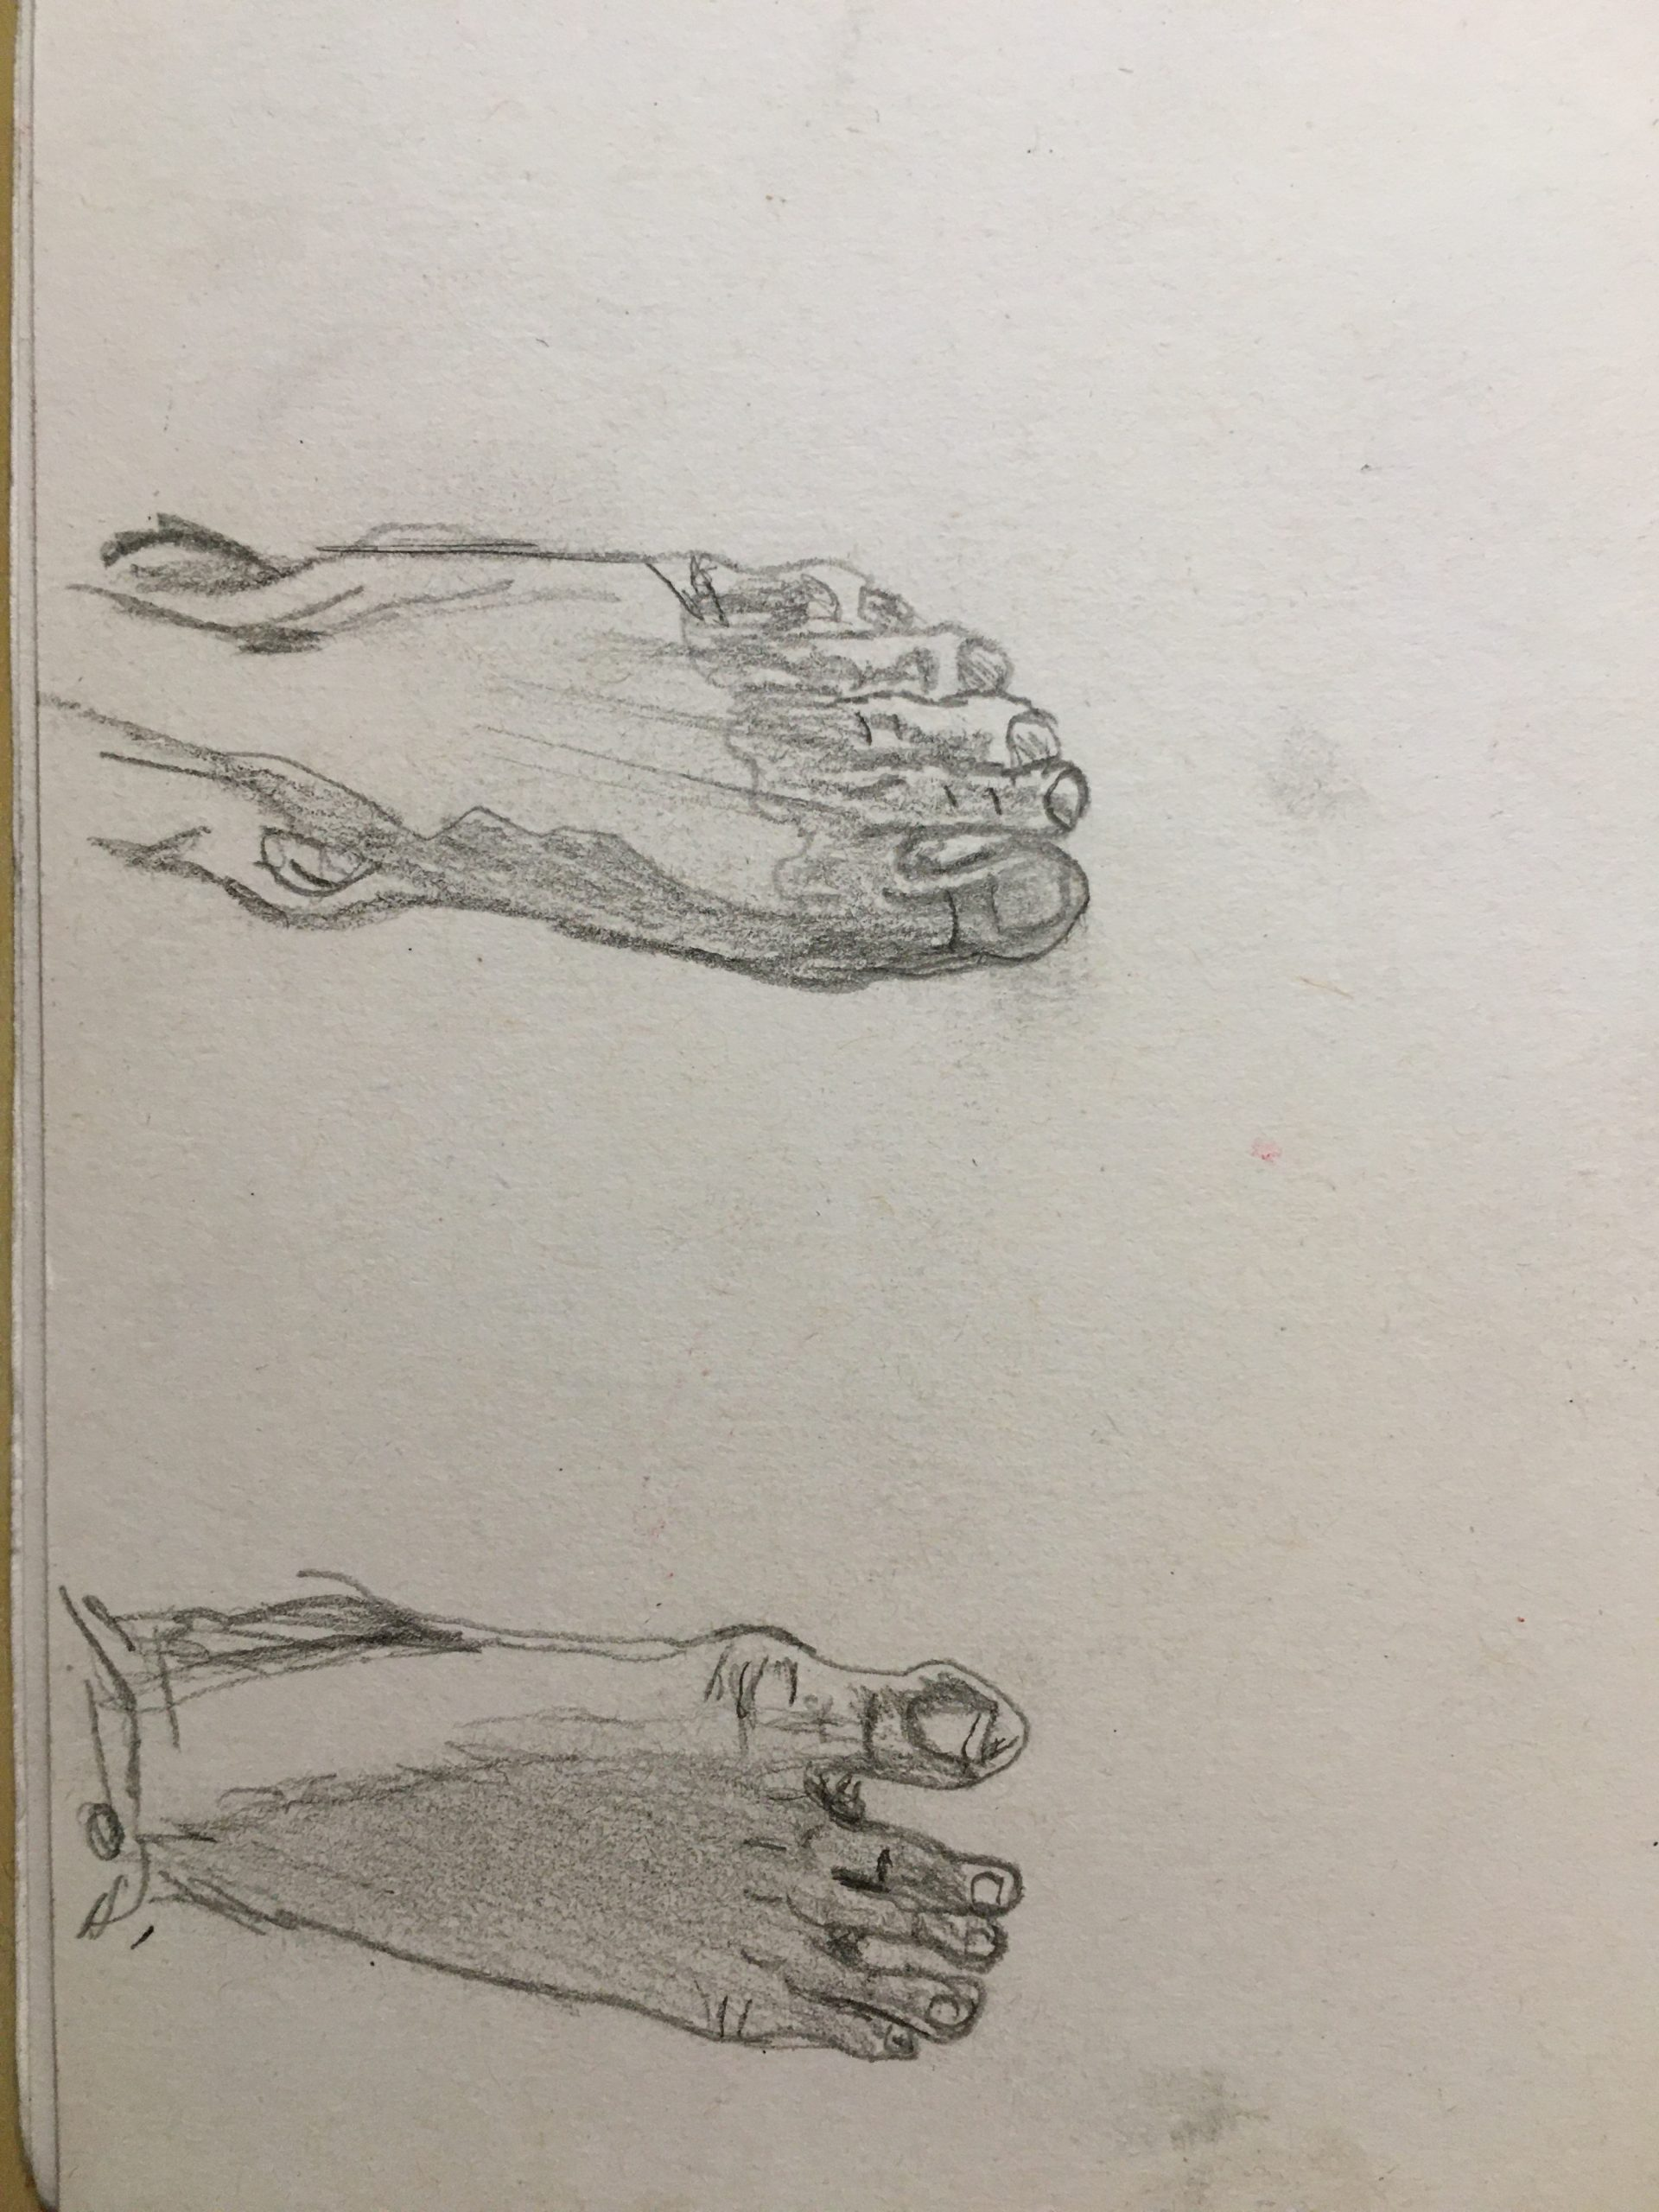 Foot Studies 2 and 3